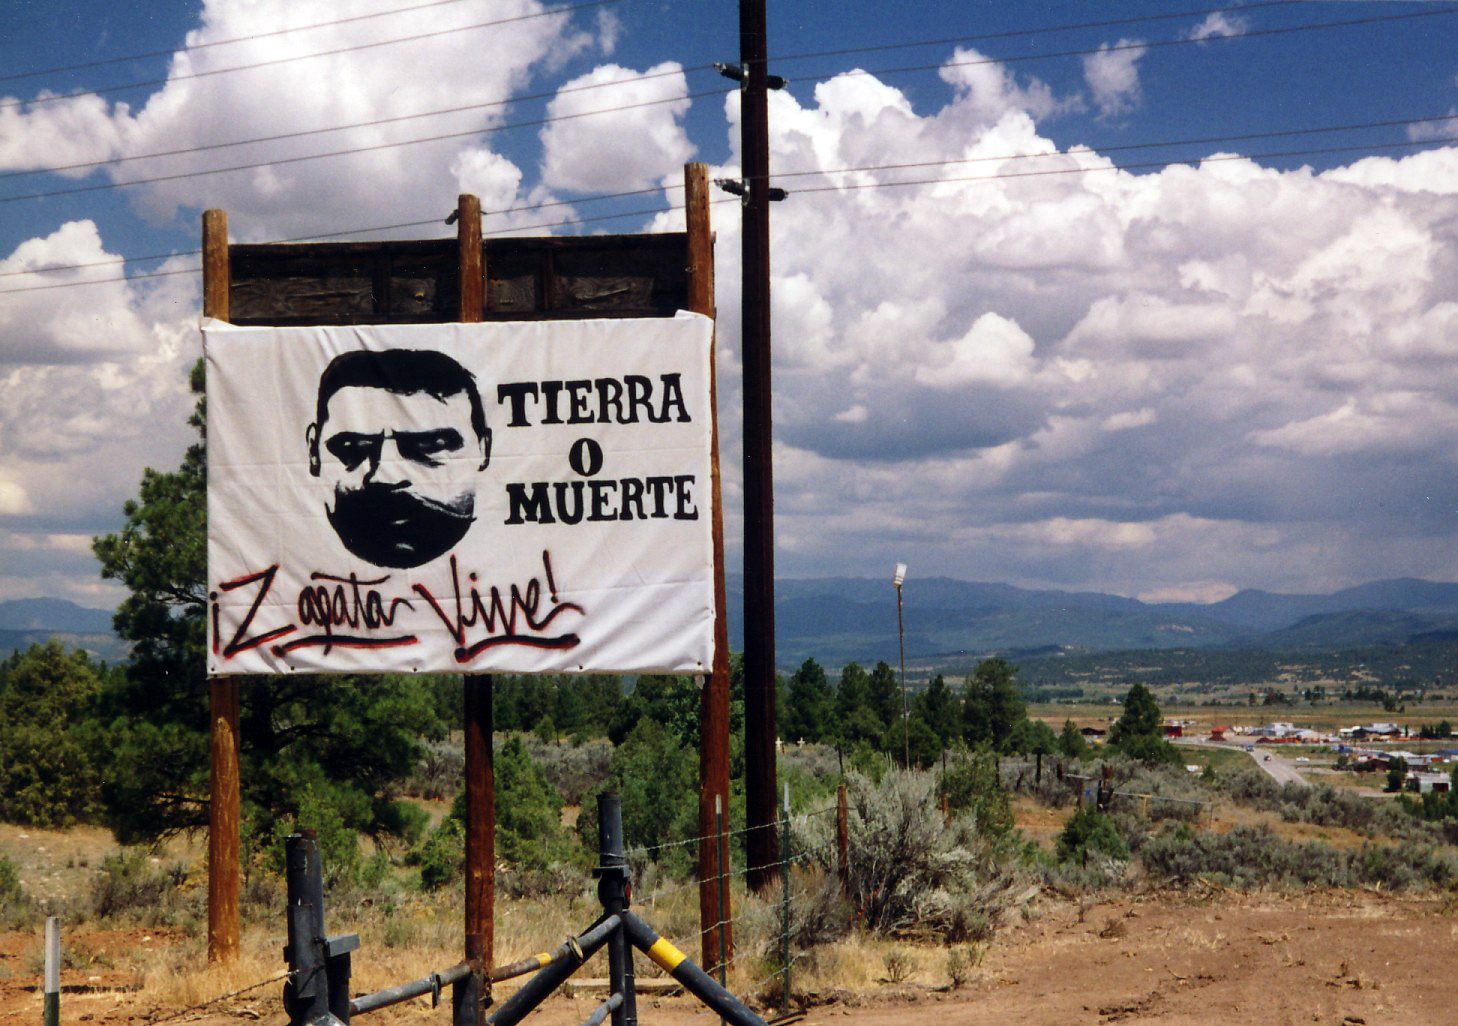 tierra amarilla hispanic single men Tierra o muerte: remembering the río arriba courthouse raid  men holed up in  as frank waters writes in the introduction to ebright's the tierra amarilla.